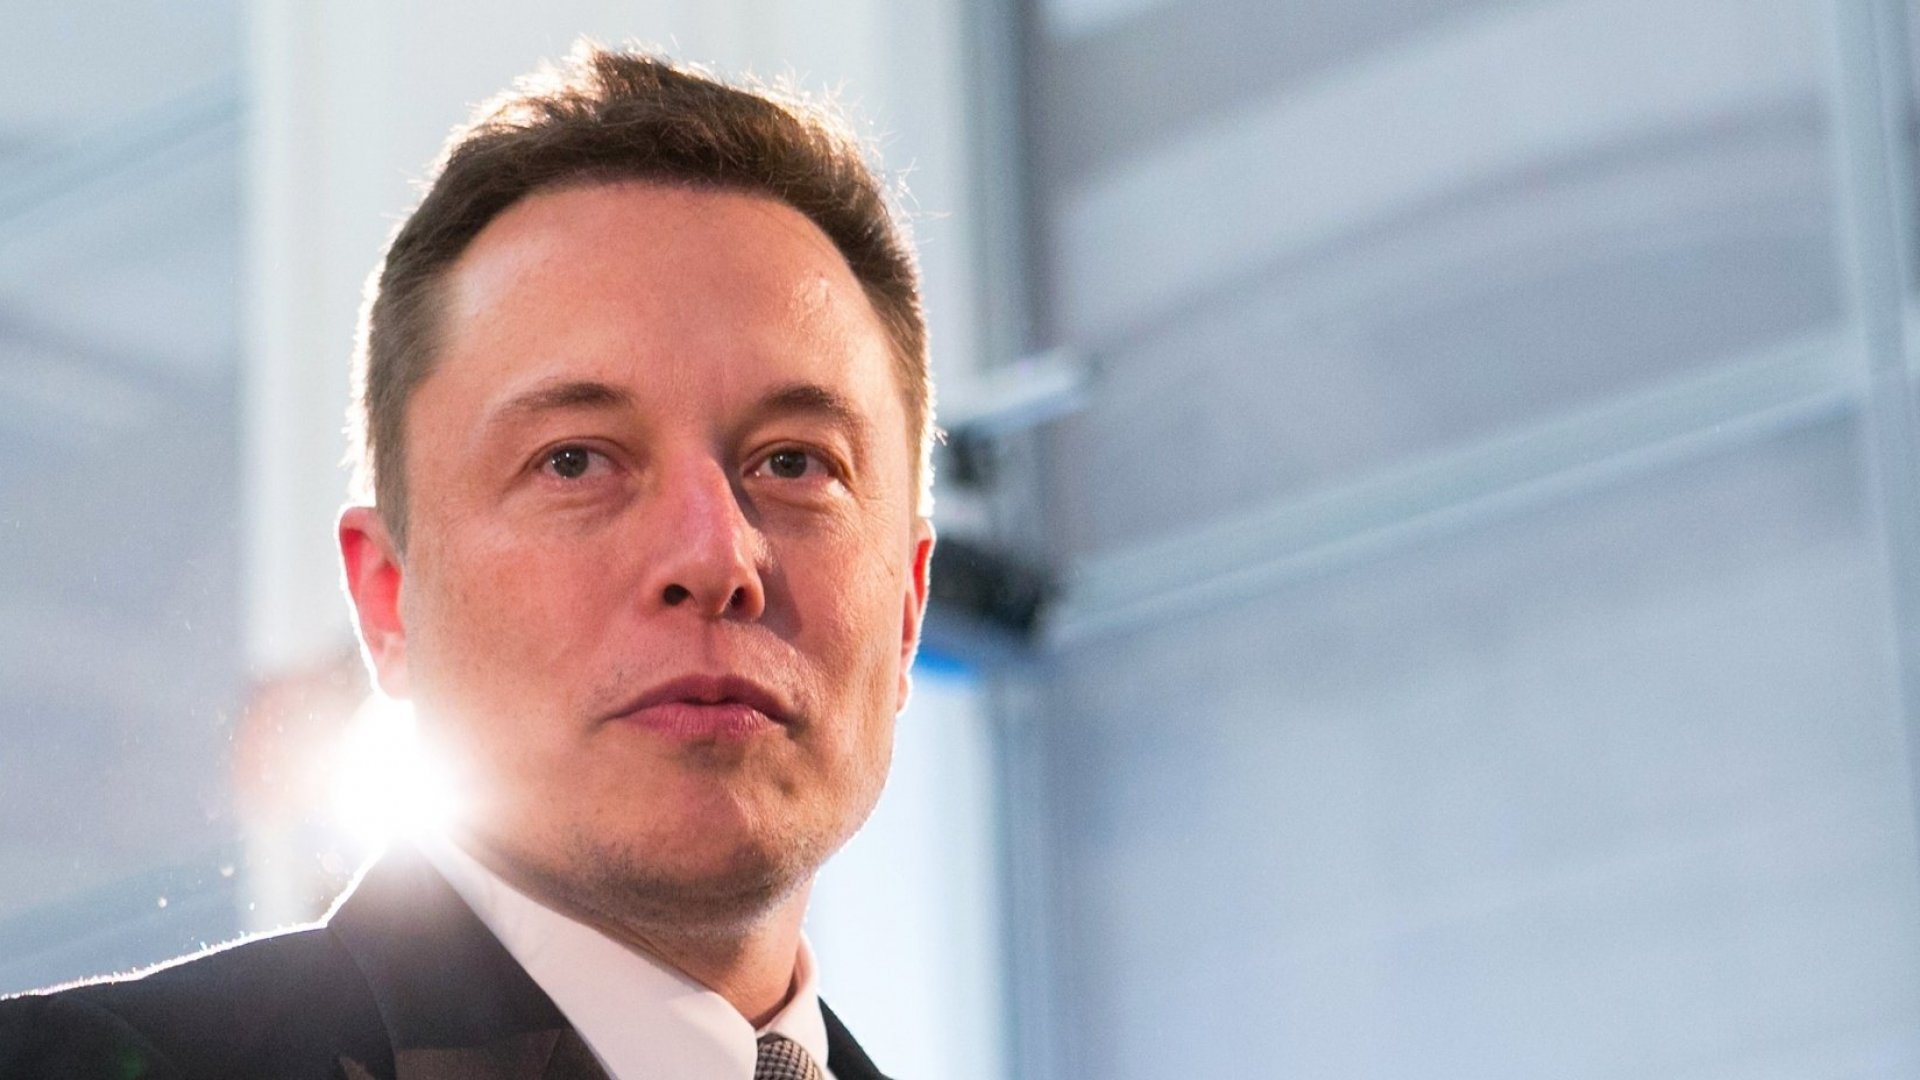 Barbs fly over satellite projects from Musk, Bezos